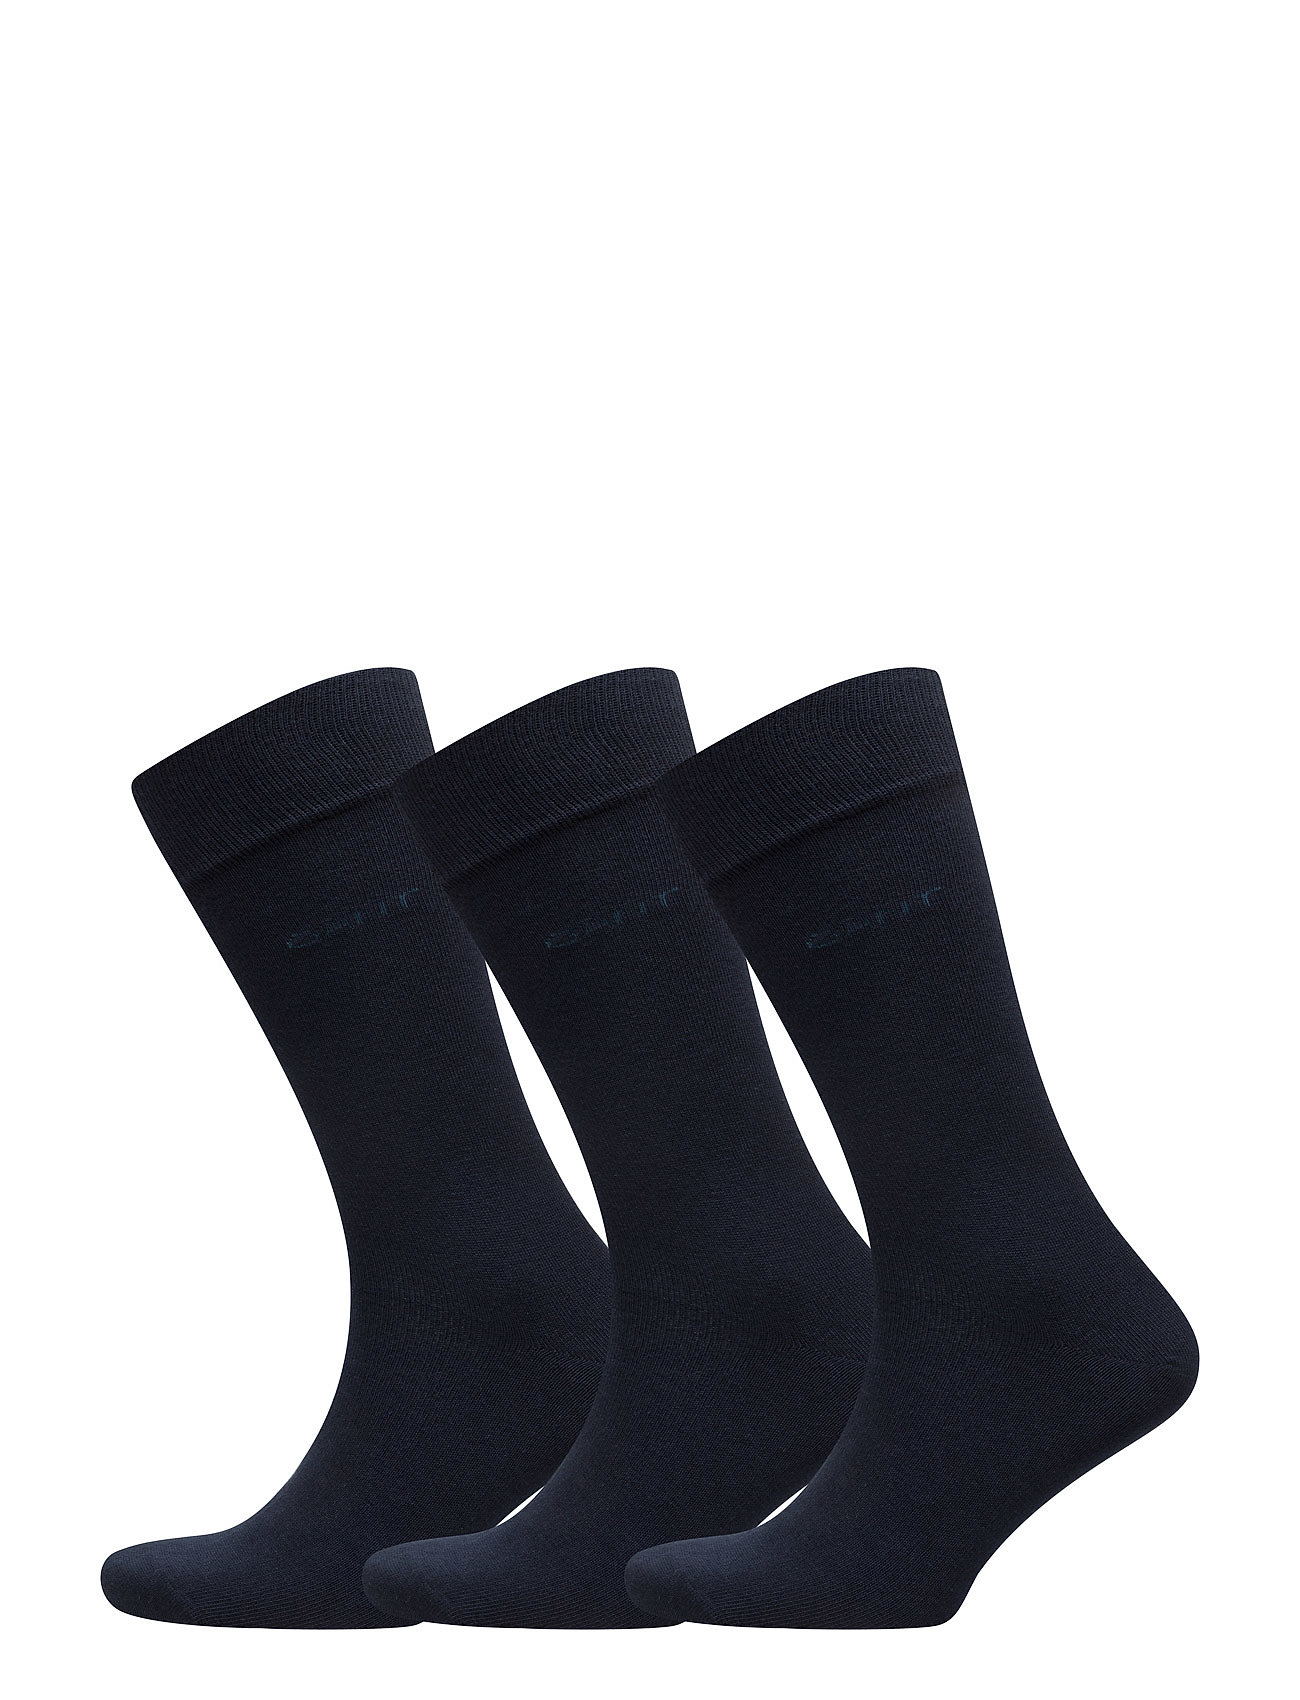 GANT 3-PACK SOFT COTTON SOCKS